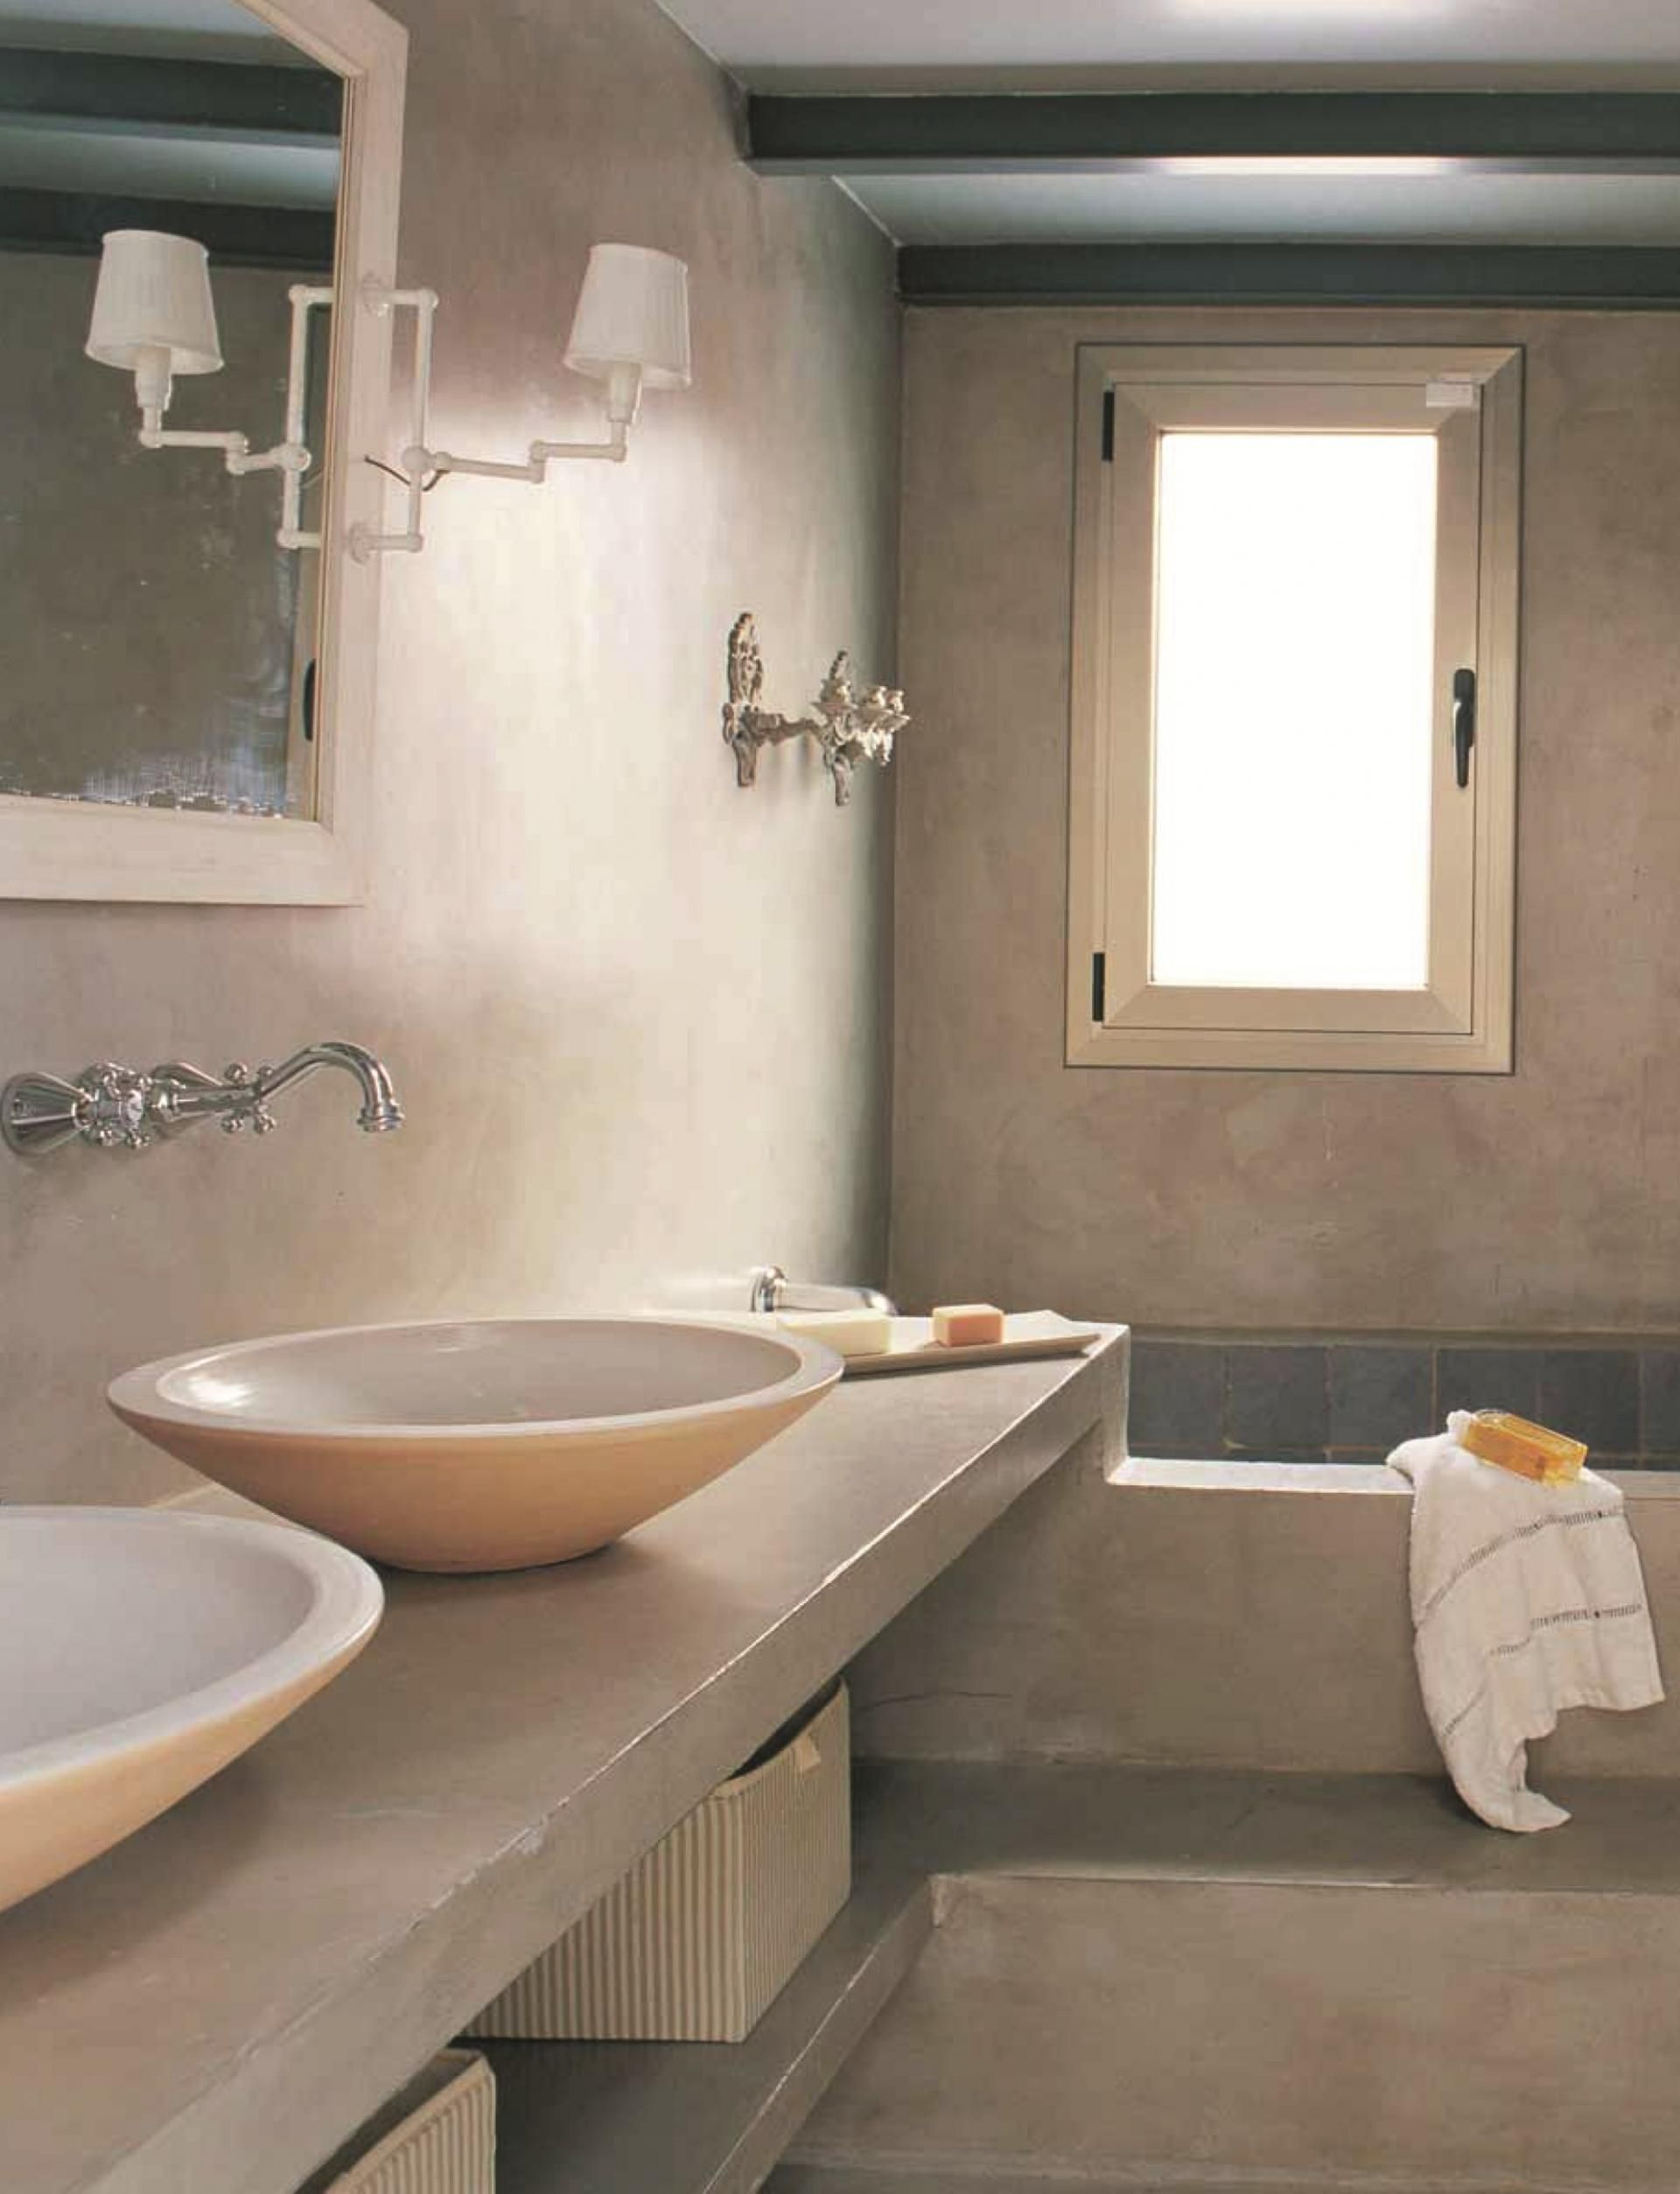 Microcemento at bathroom ideas para ba os pinterest - Banos en microcemento ...